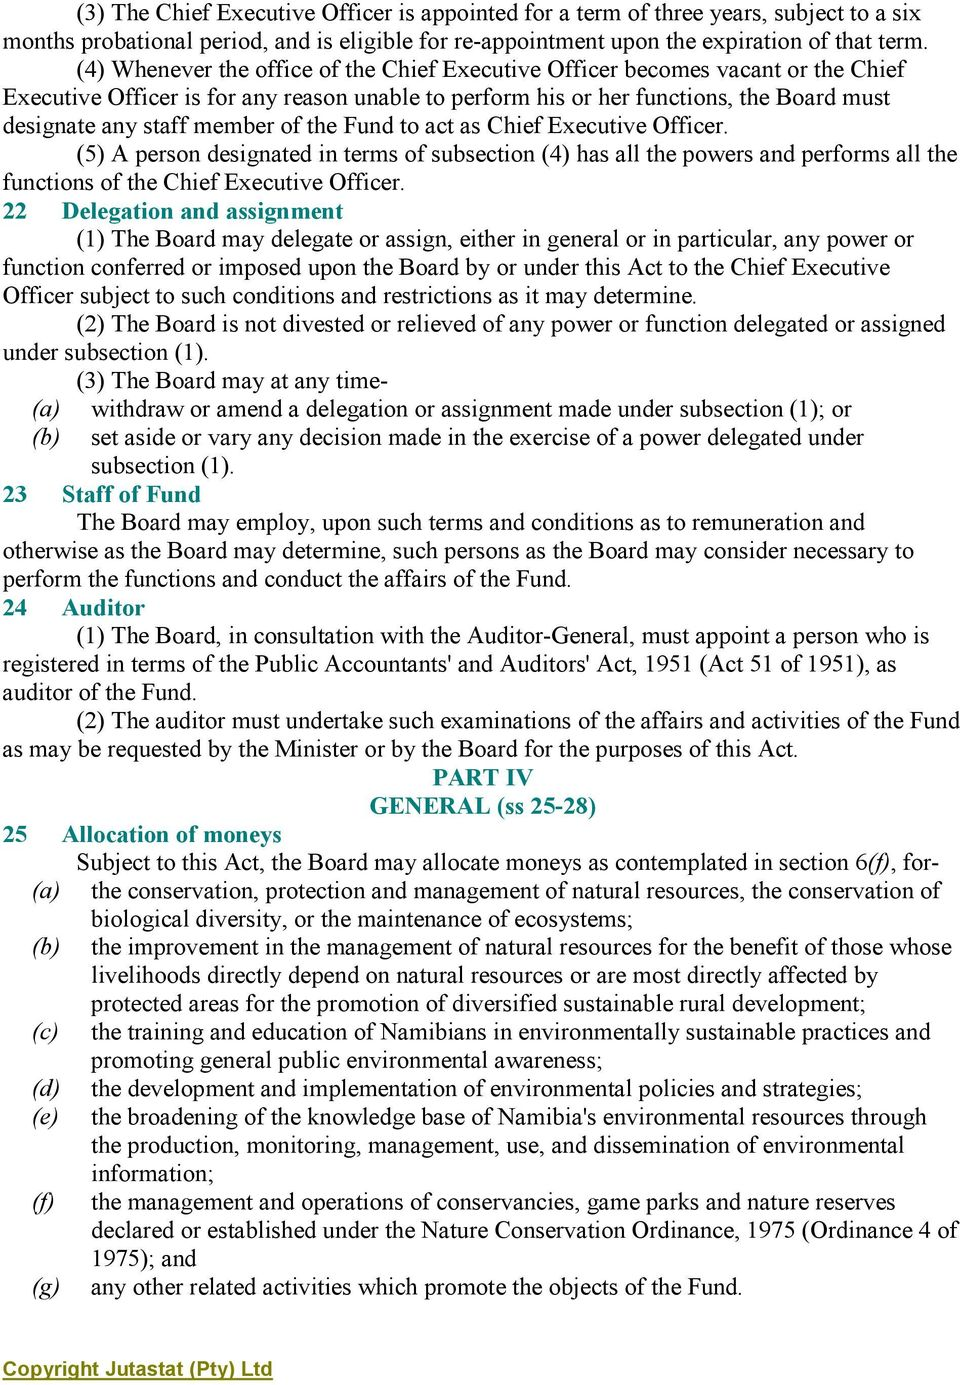 member of the Fund to act as Chief Executive Officer. (5) A person designated in terms of subsection (4) has all the powers and performs all the functions of the Chief Executive Officer.